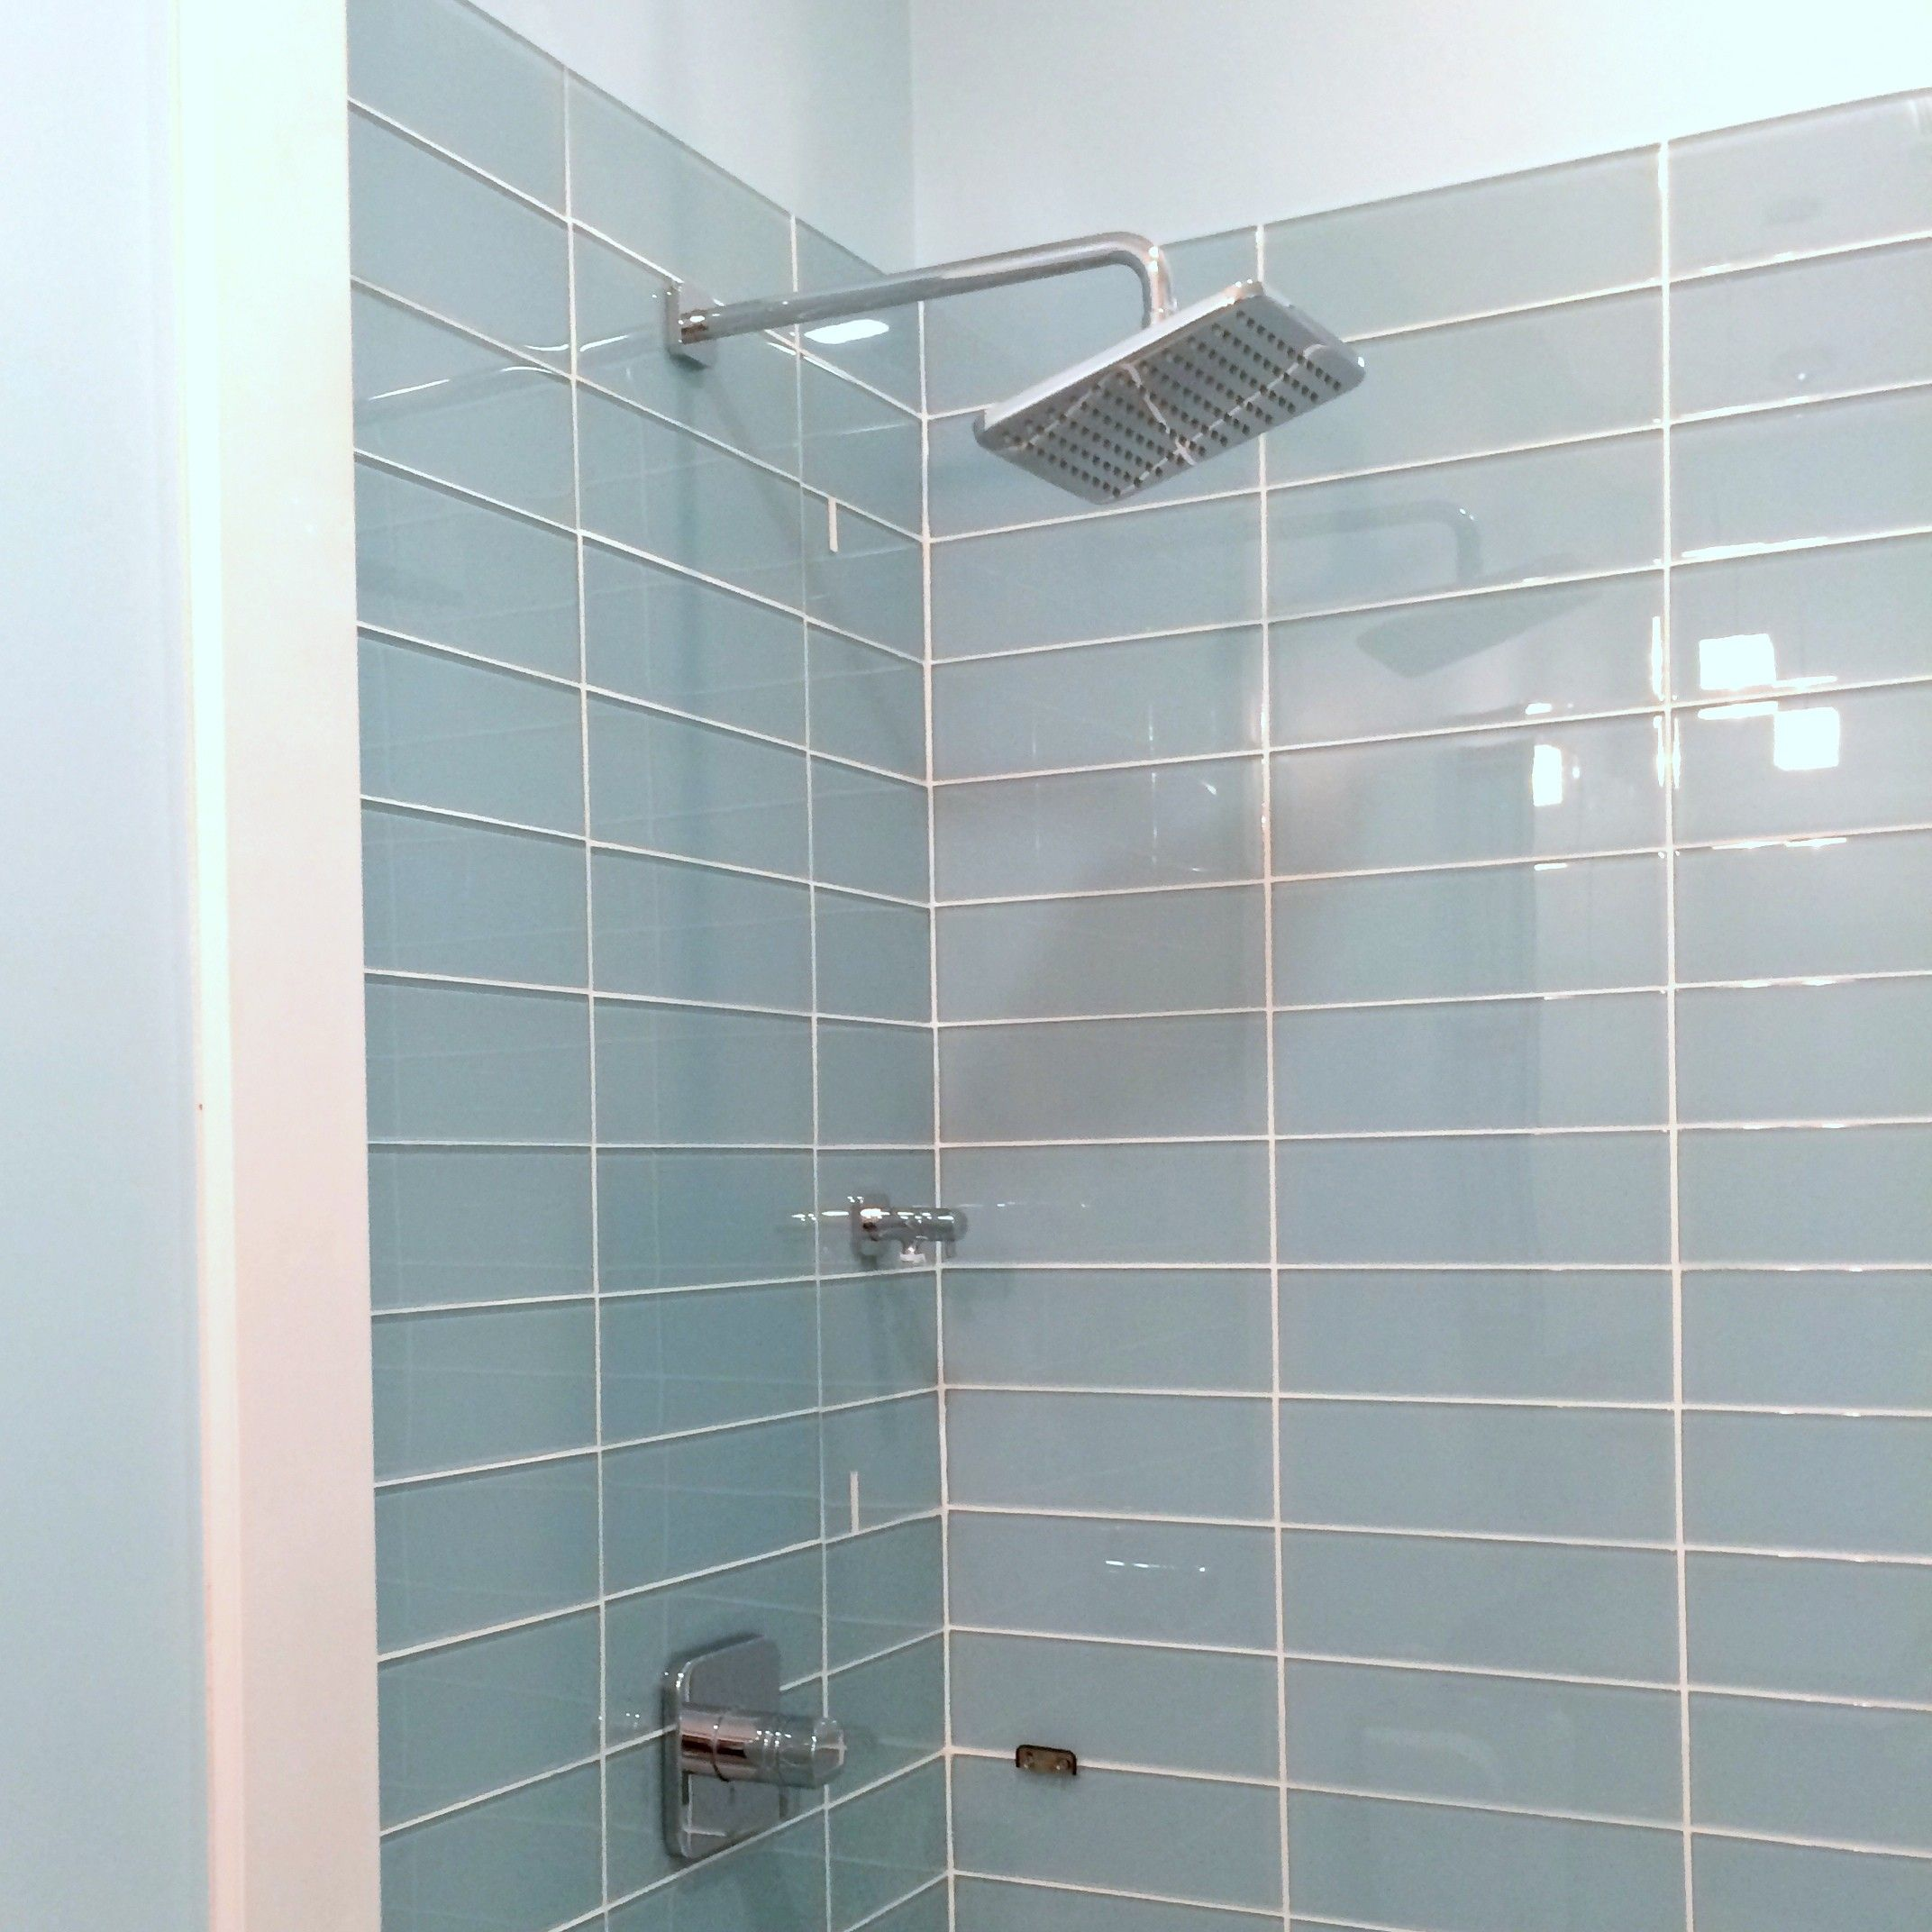 How To Install Subway Tile In A Shower | Tile Design Ideas